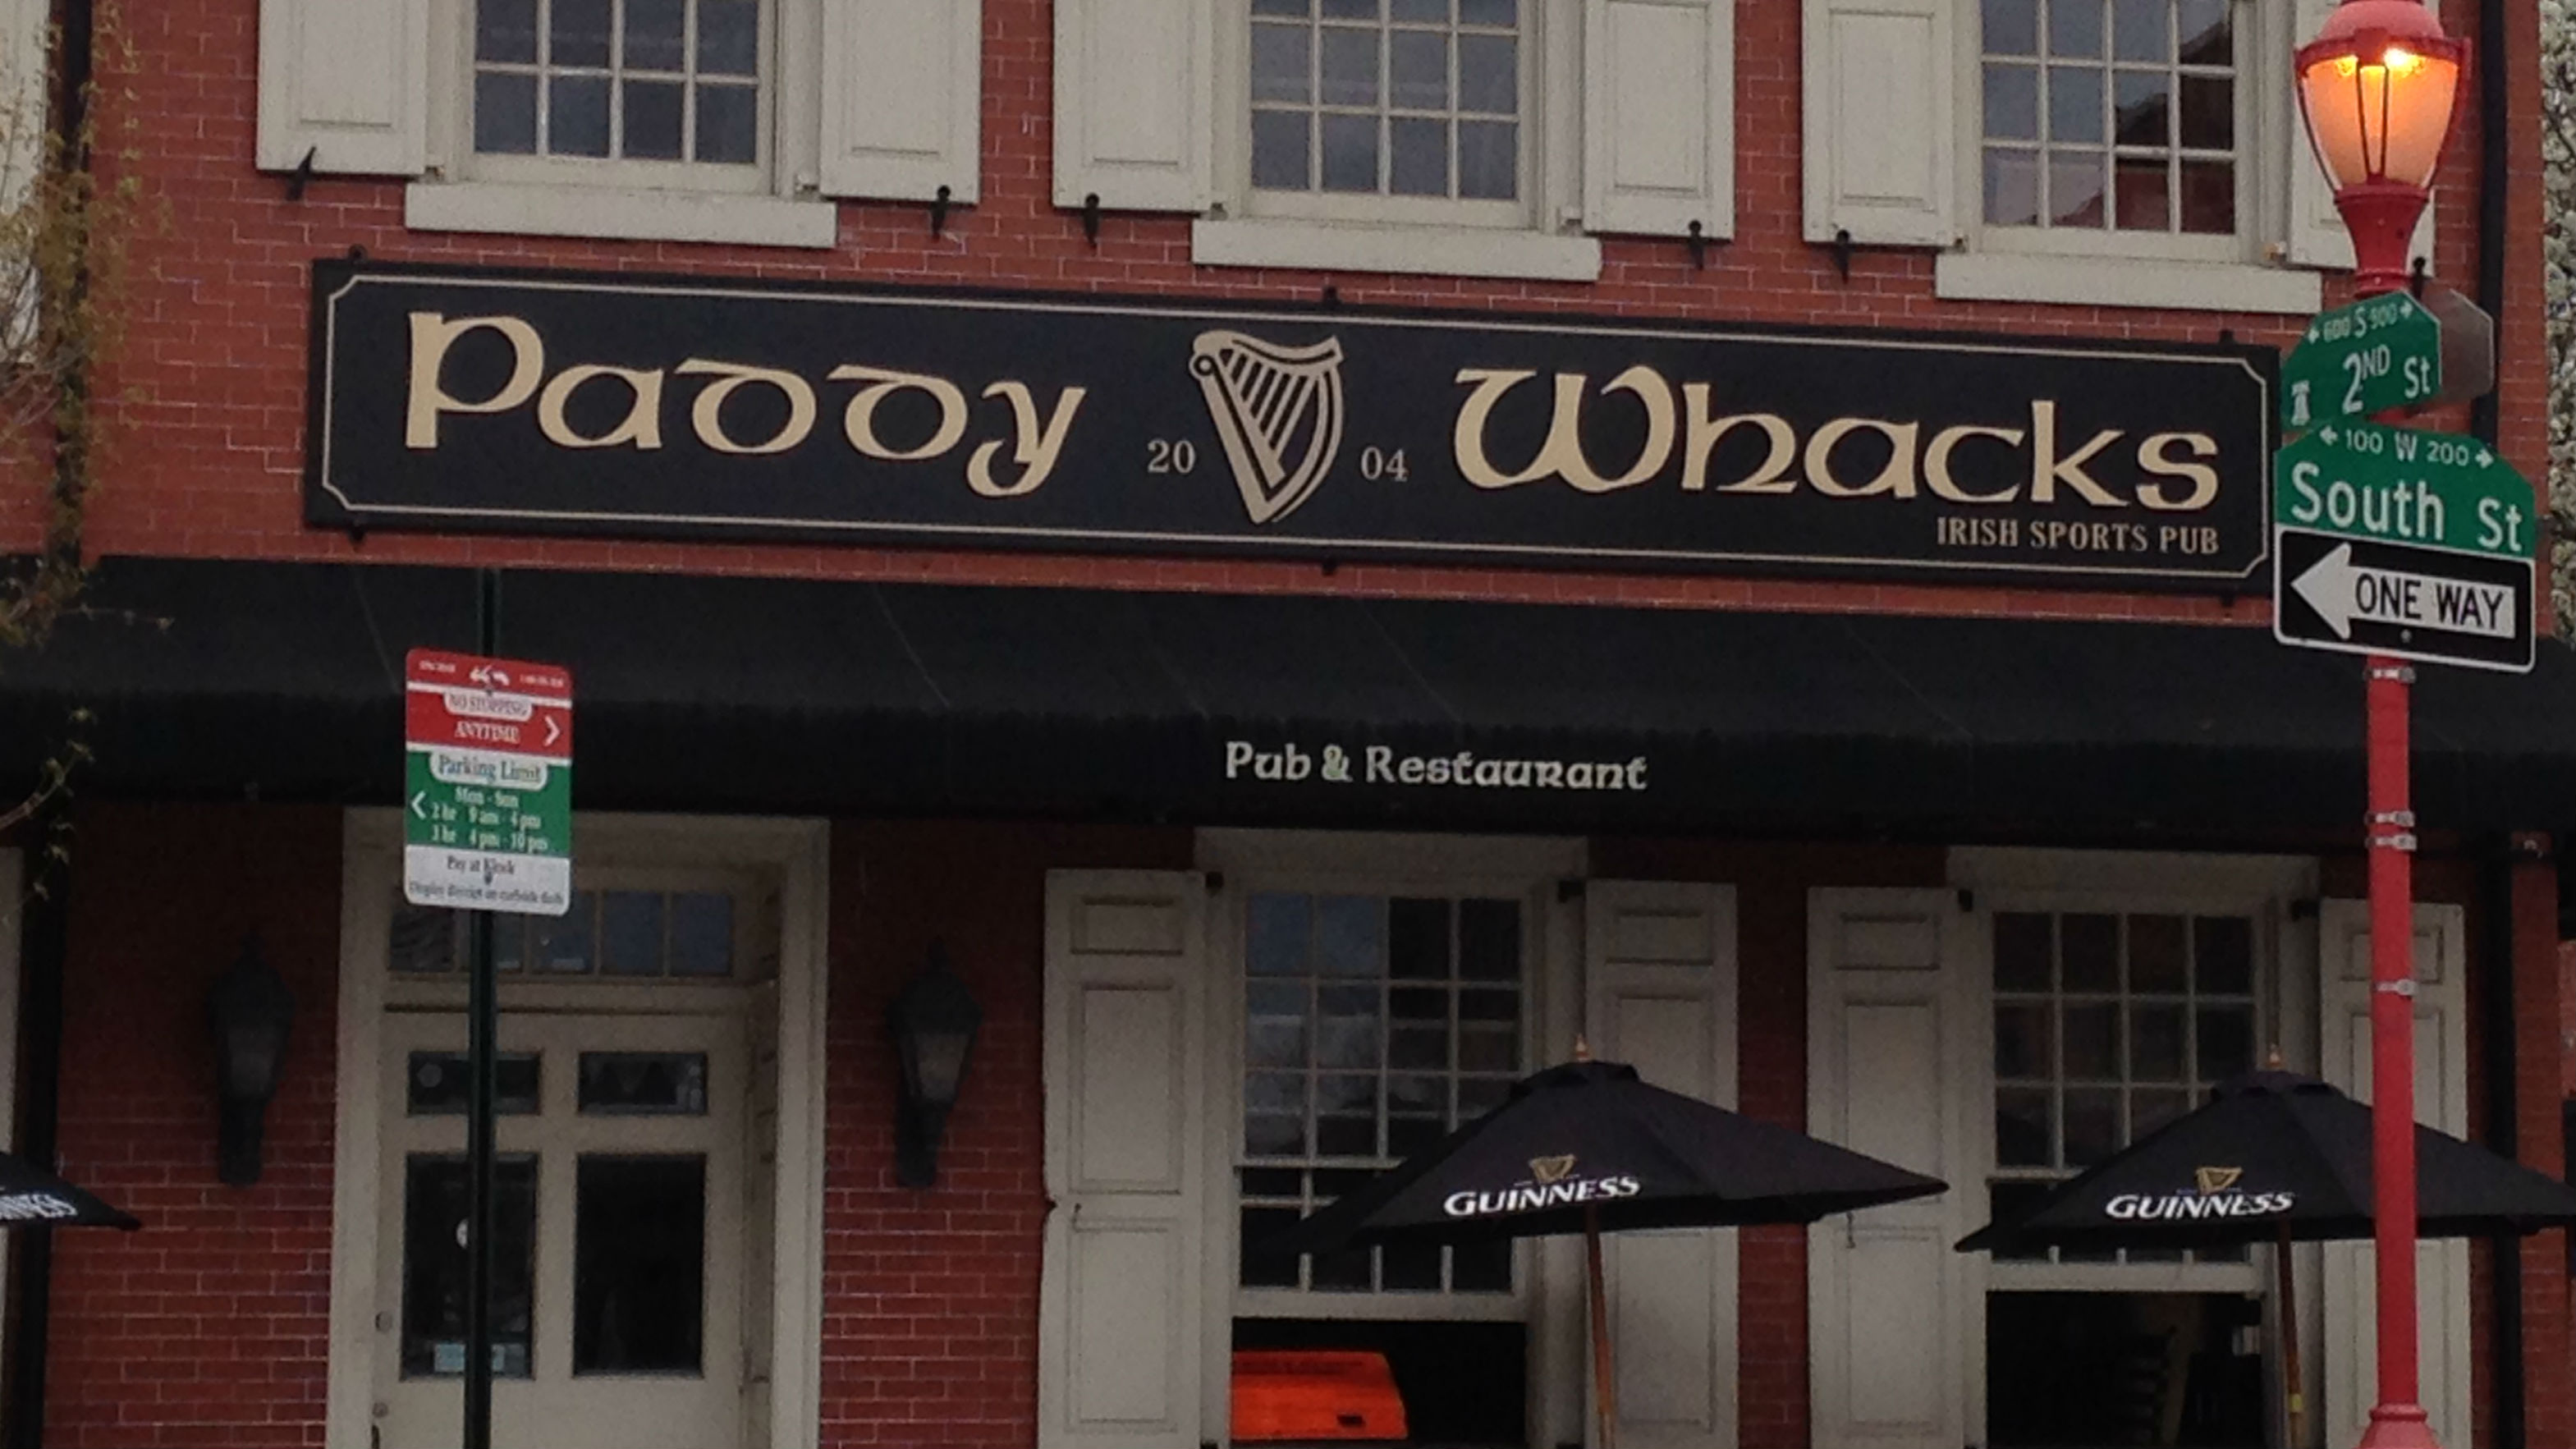 Paddy Whacks on South Street, one of many bars throughout Philadelphia participating in the World's Largest Bar Crawl. (Credit: Andrew Kramer)